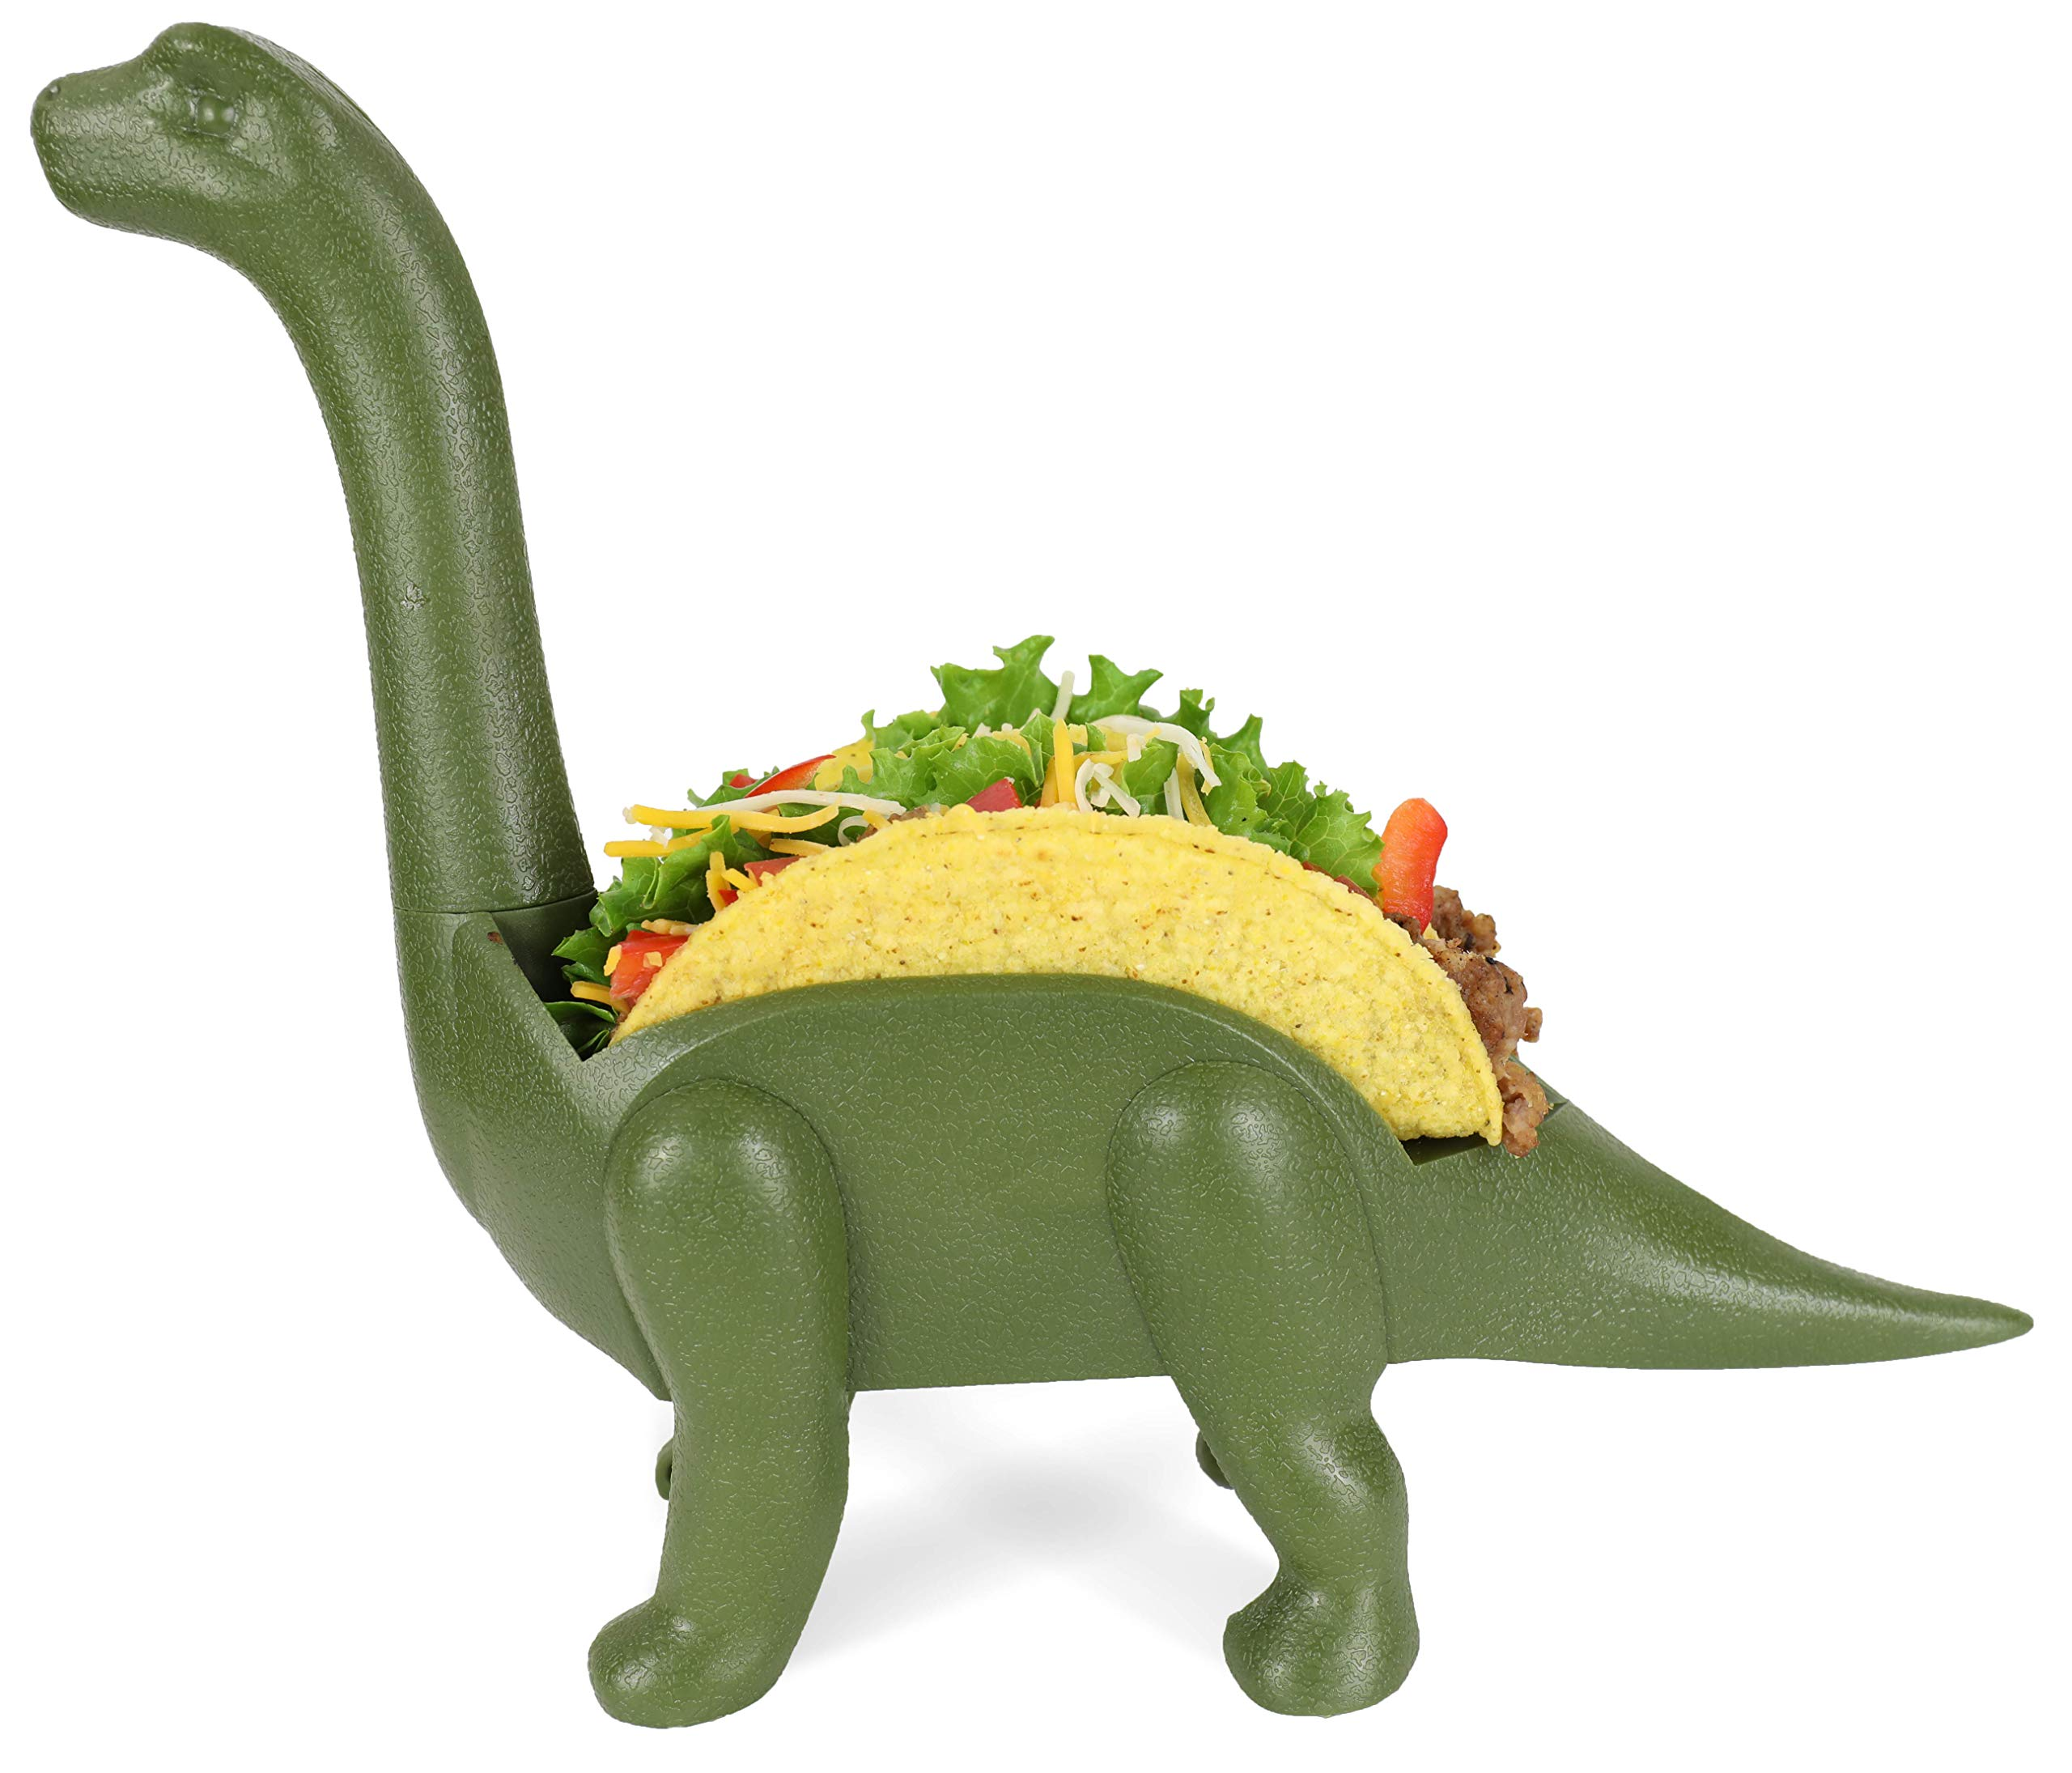 GrubKeepers Dinosaur Taco Holder - Ultrasaurus (Holds 2 Tacos!) - for Jurassic Taco Tuesdays and Dinosaur Parties - Perfect Gift for Taco Lovers - Perfect for Kids AND Adults